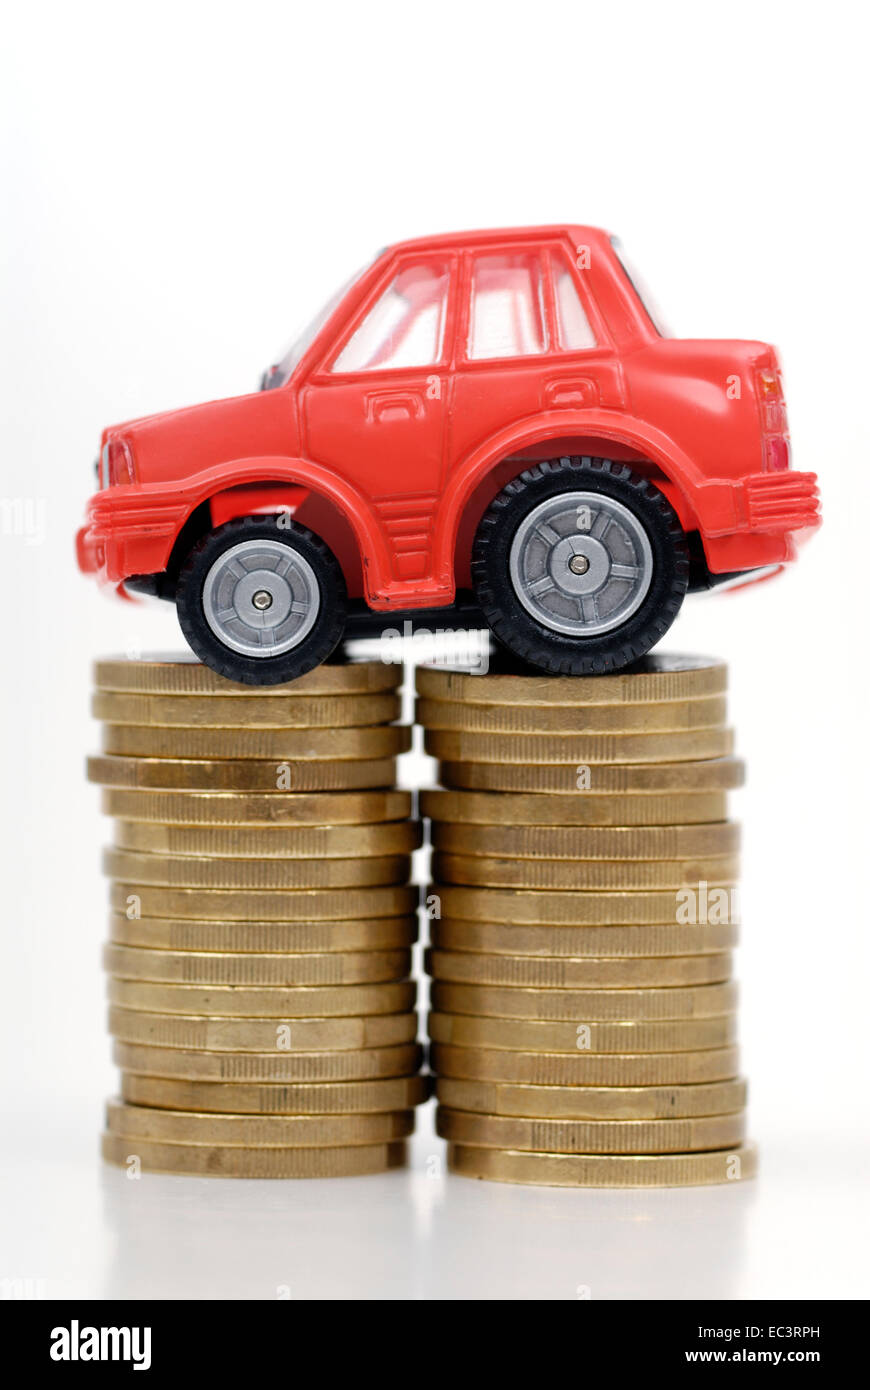 Toy car and euro coins, road charge and motor vehicle tax - Stock Image